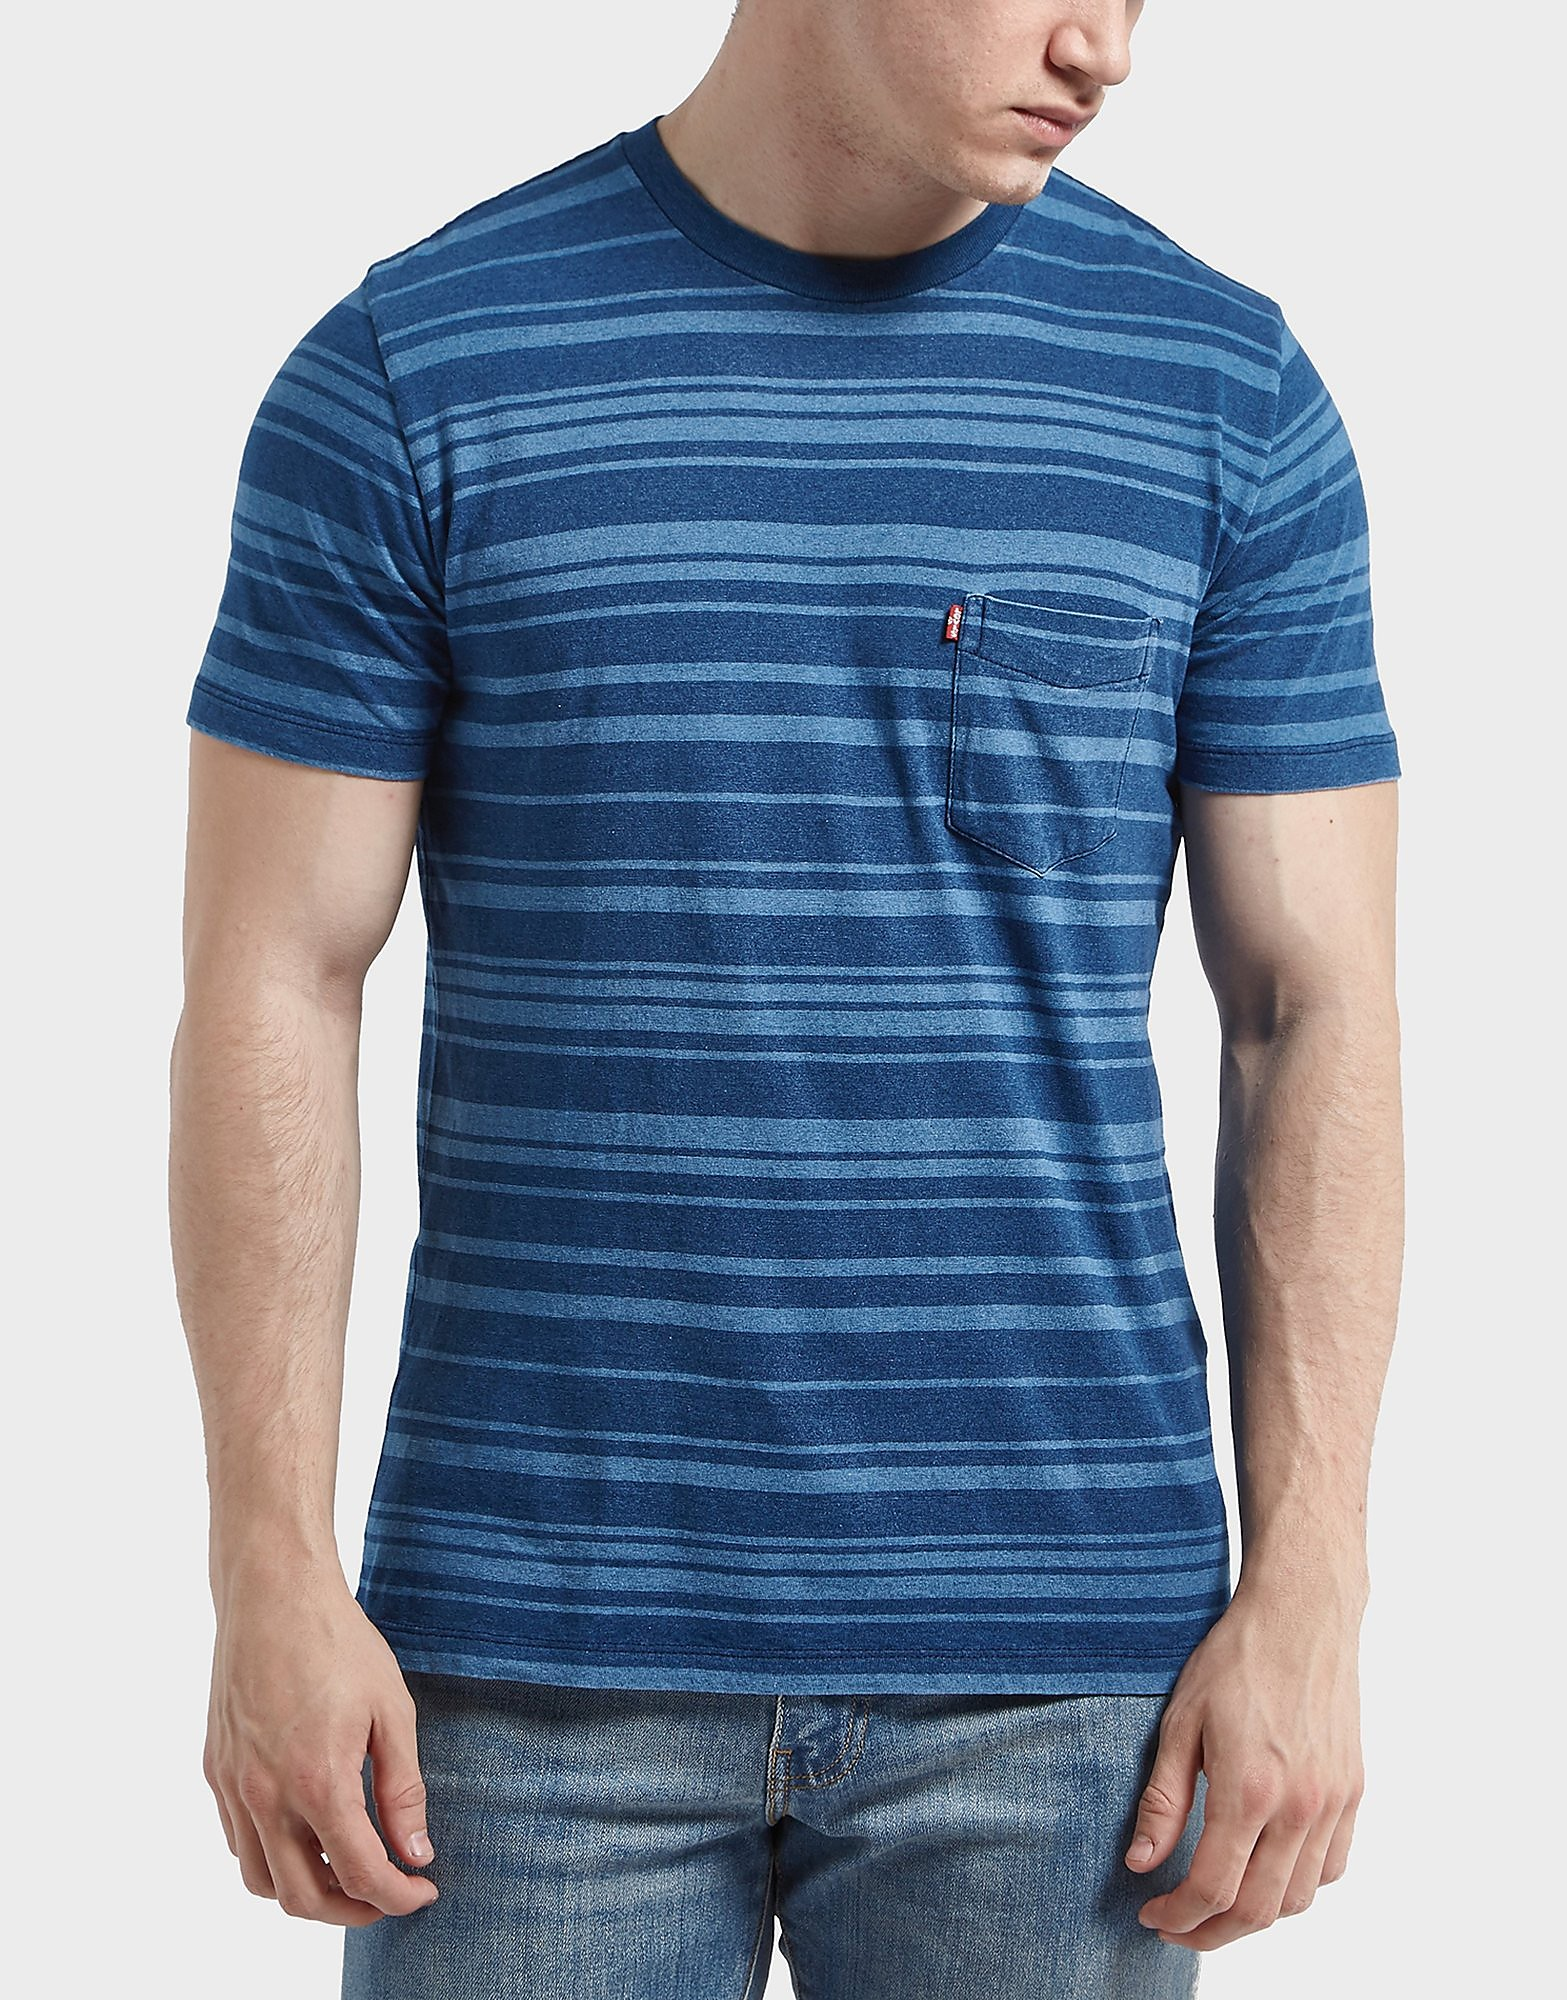 Levis Sunset Striped Short Sleeve T-Shirt